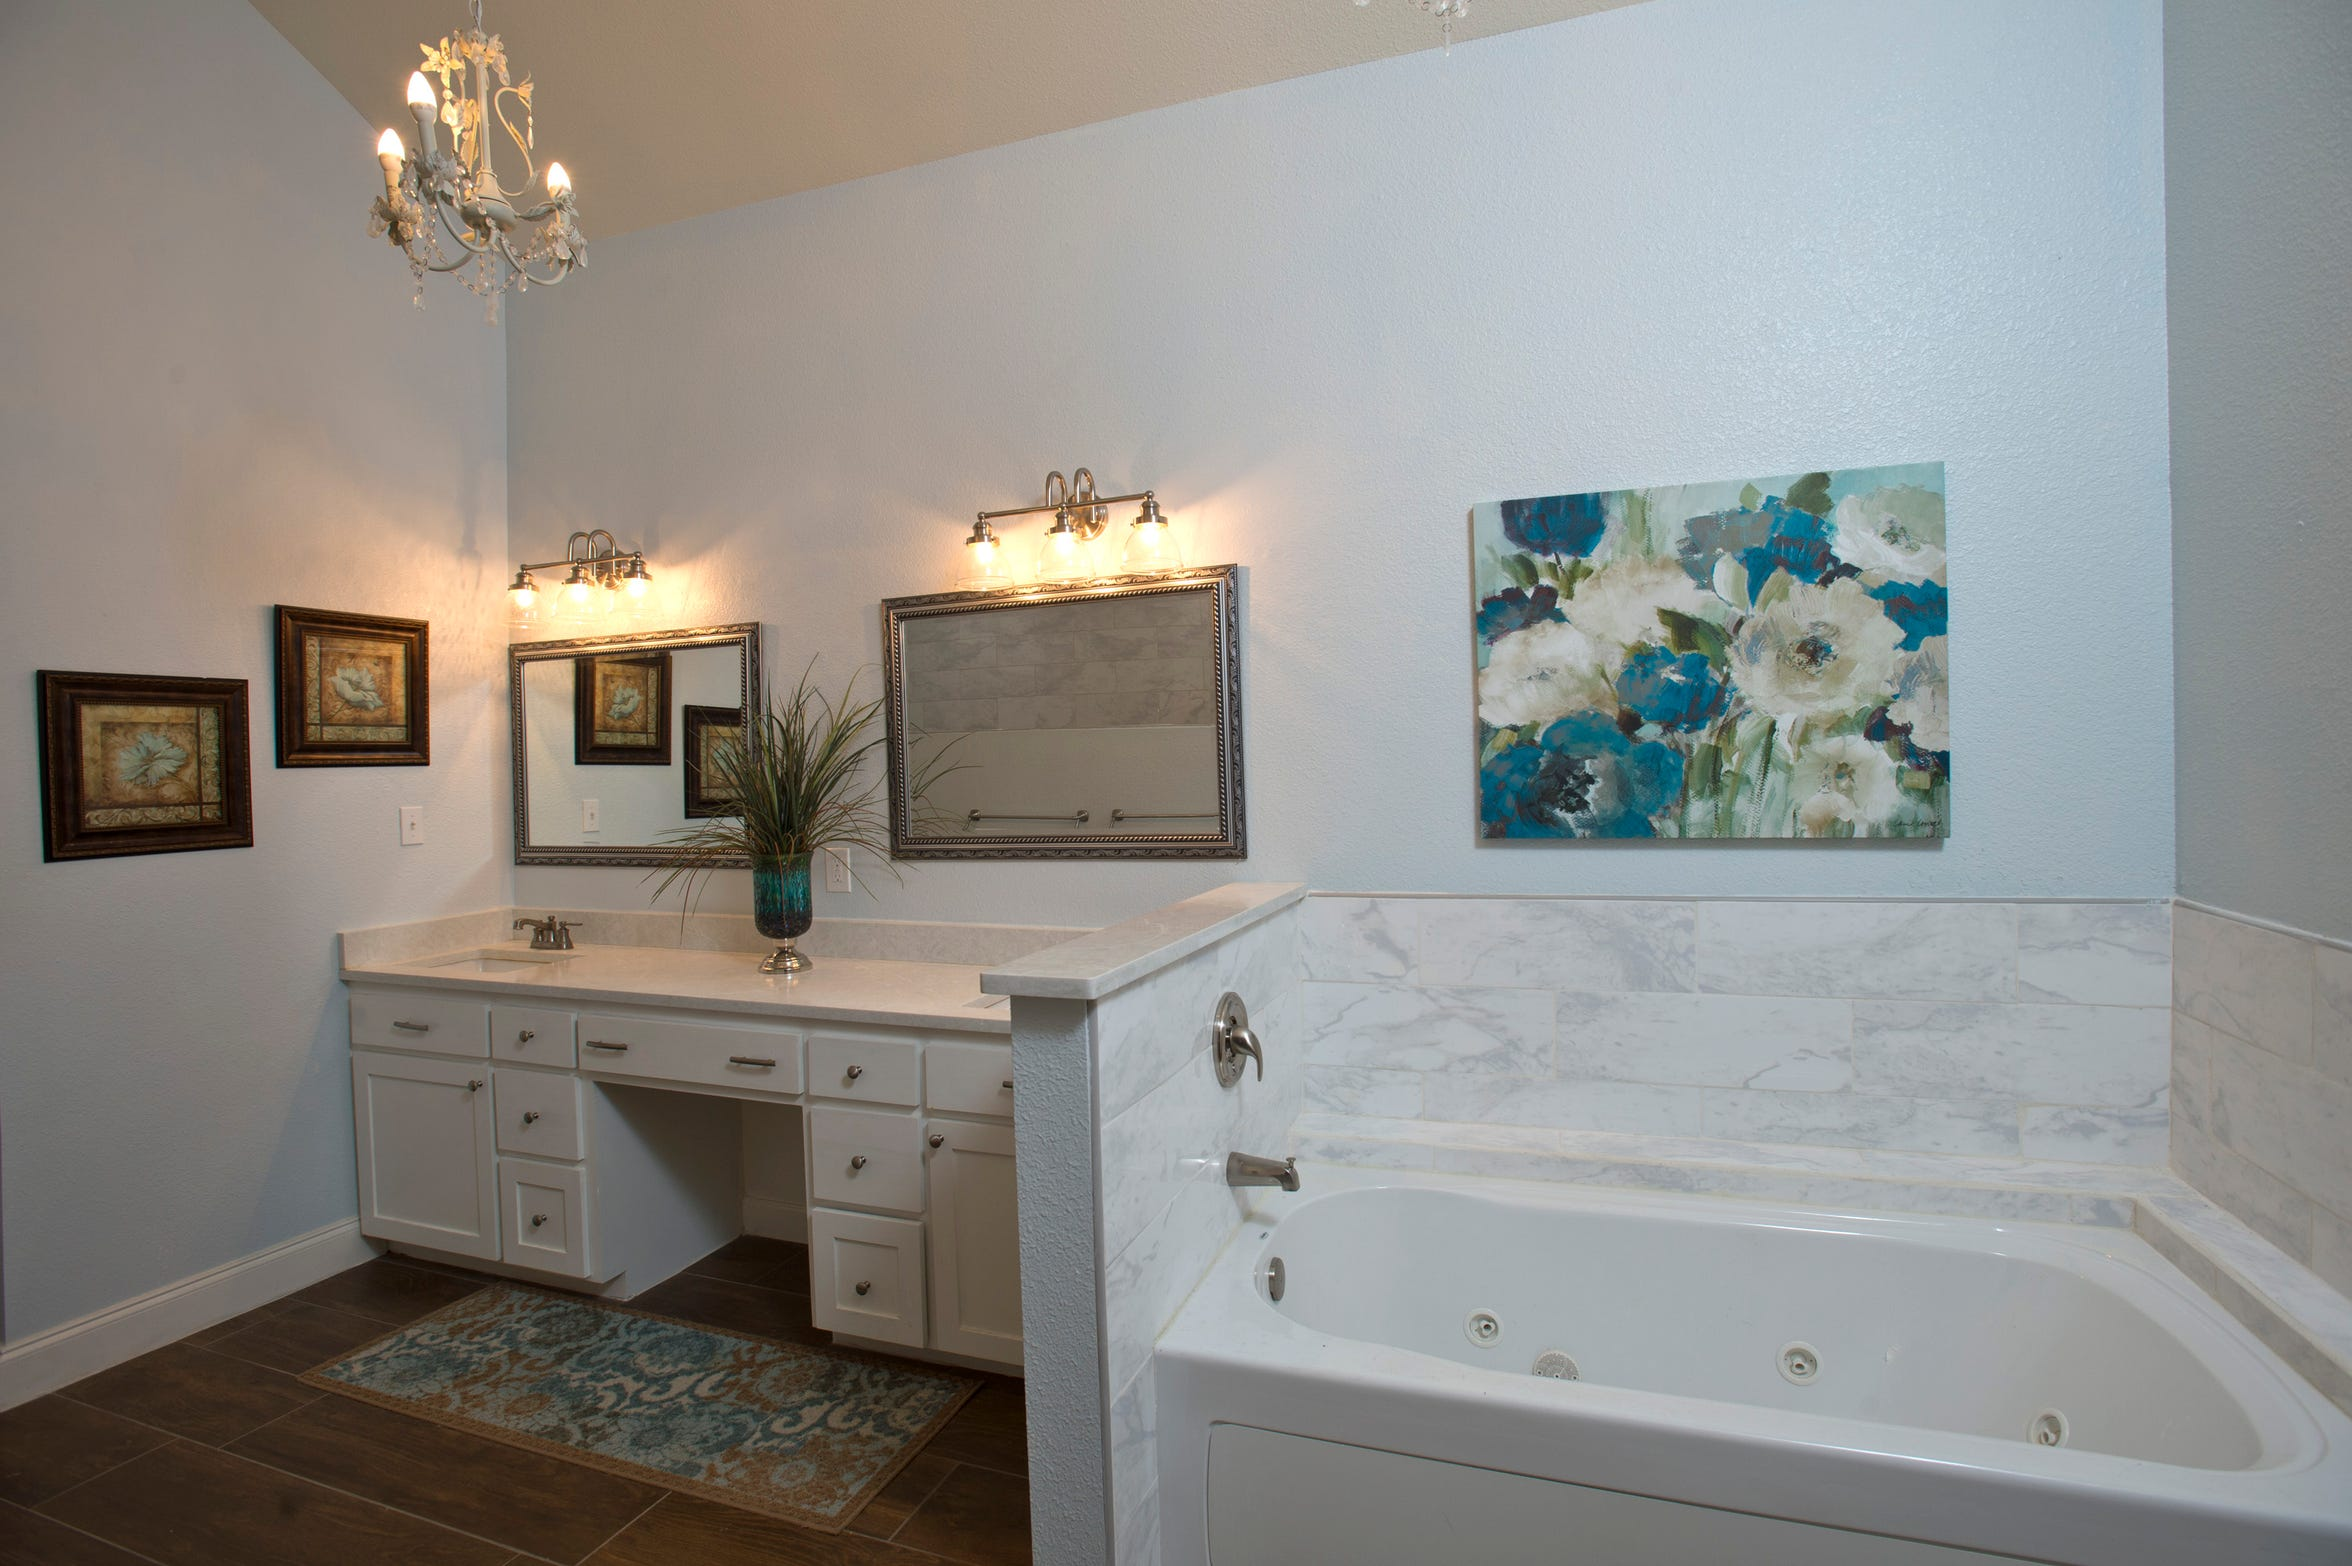 The master bath has a vaulted ceiling, whirlpool tub, wood look tile flooring plus a huge walk in shower